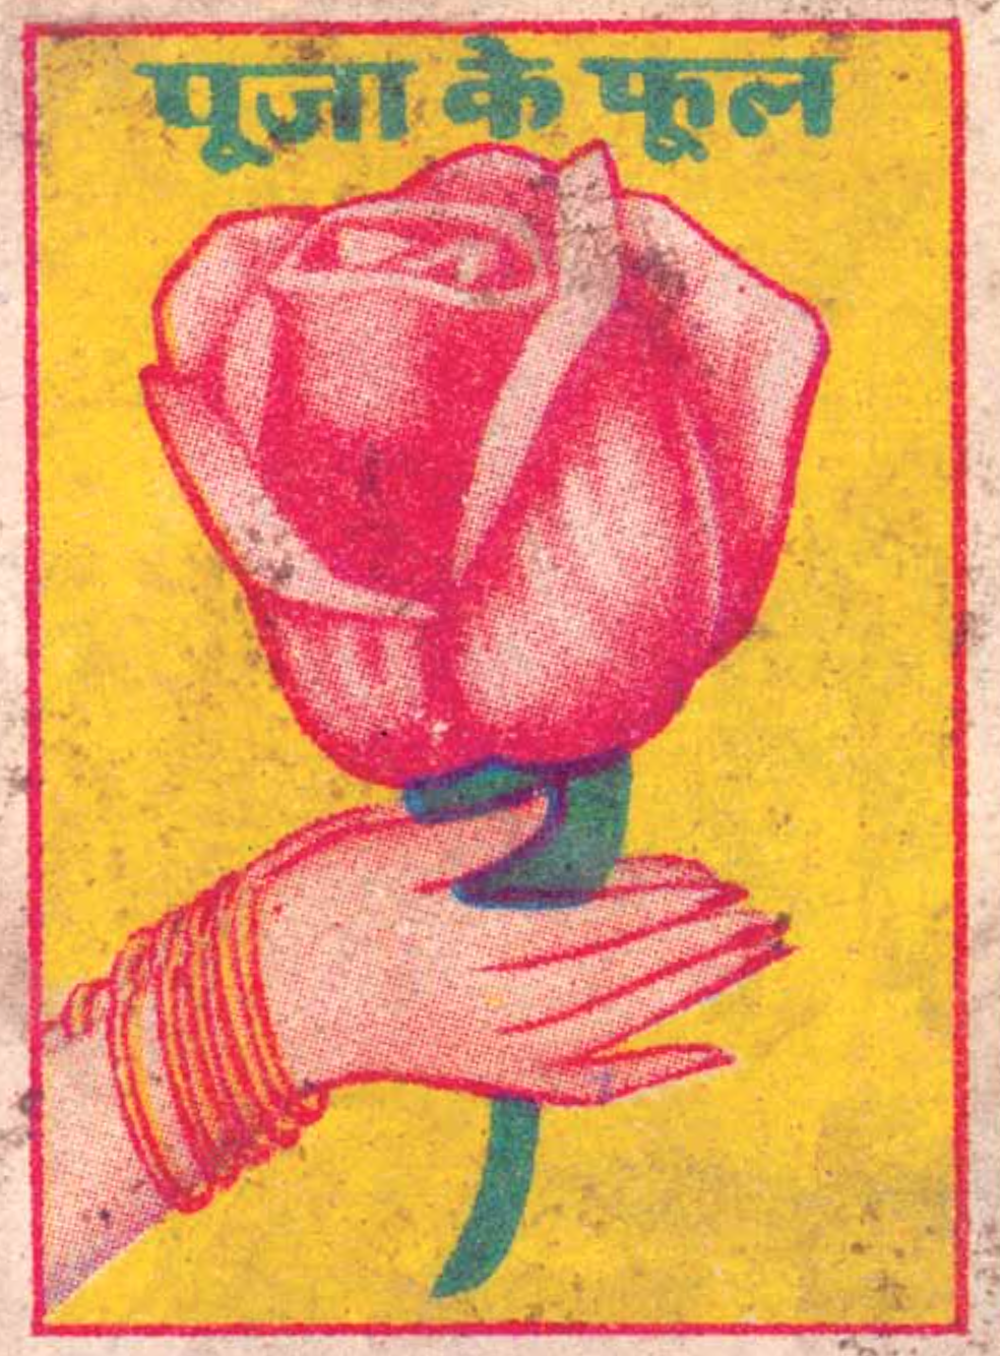 Matchbook Indian Matchbook Labels Ellie & Co blog